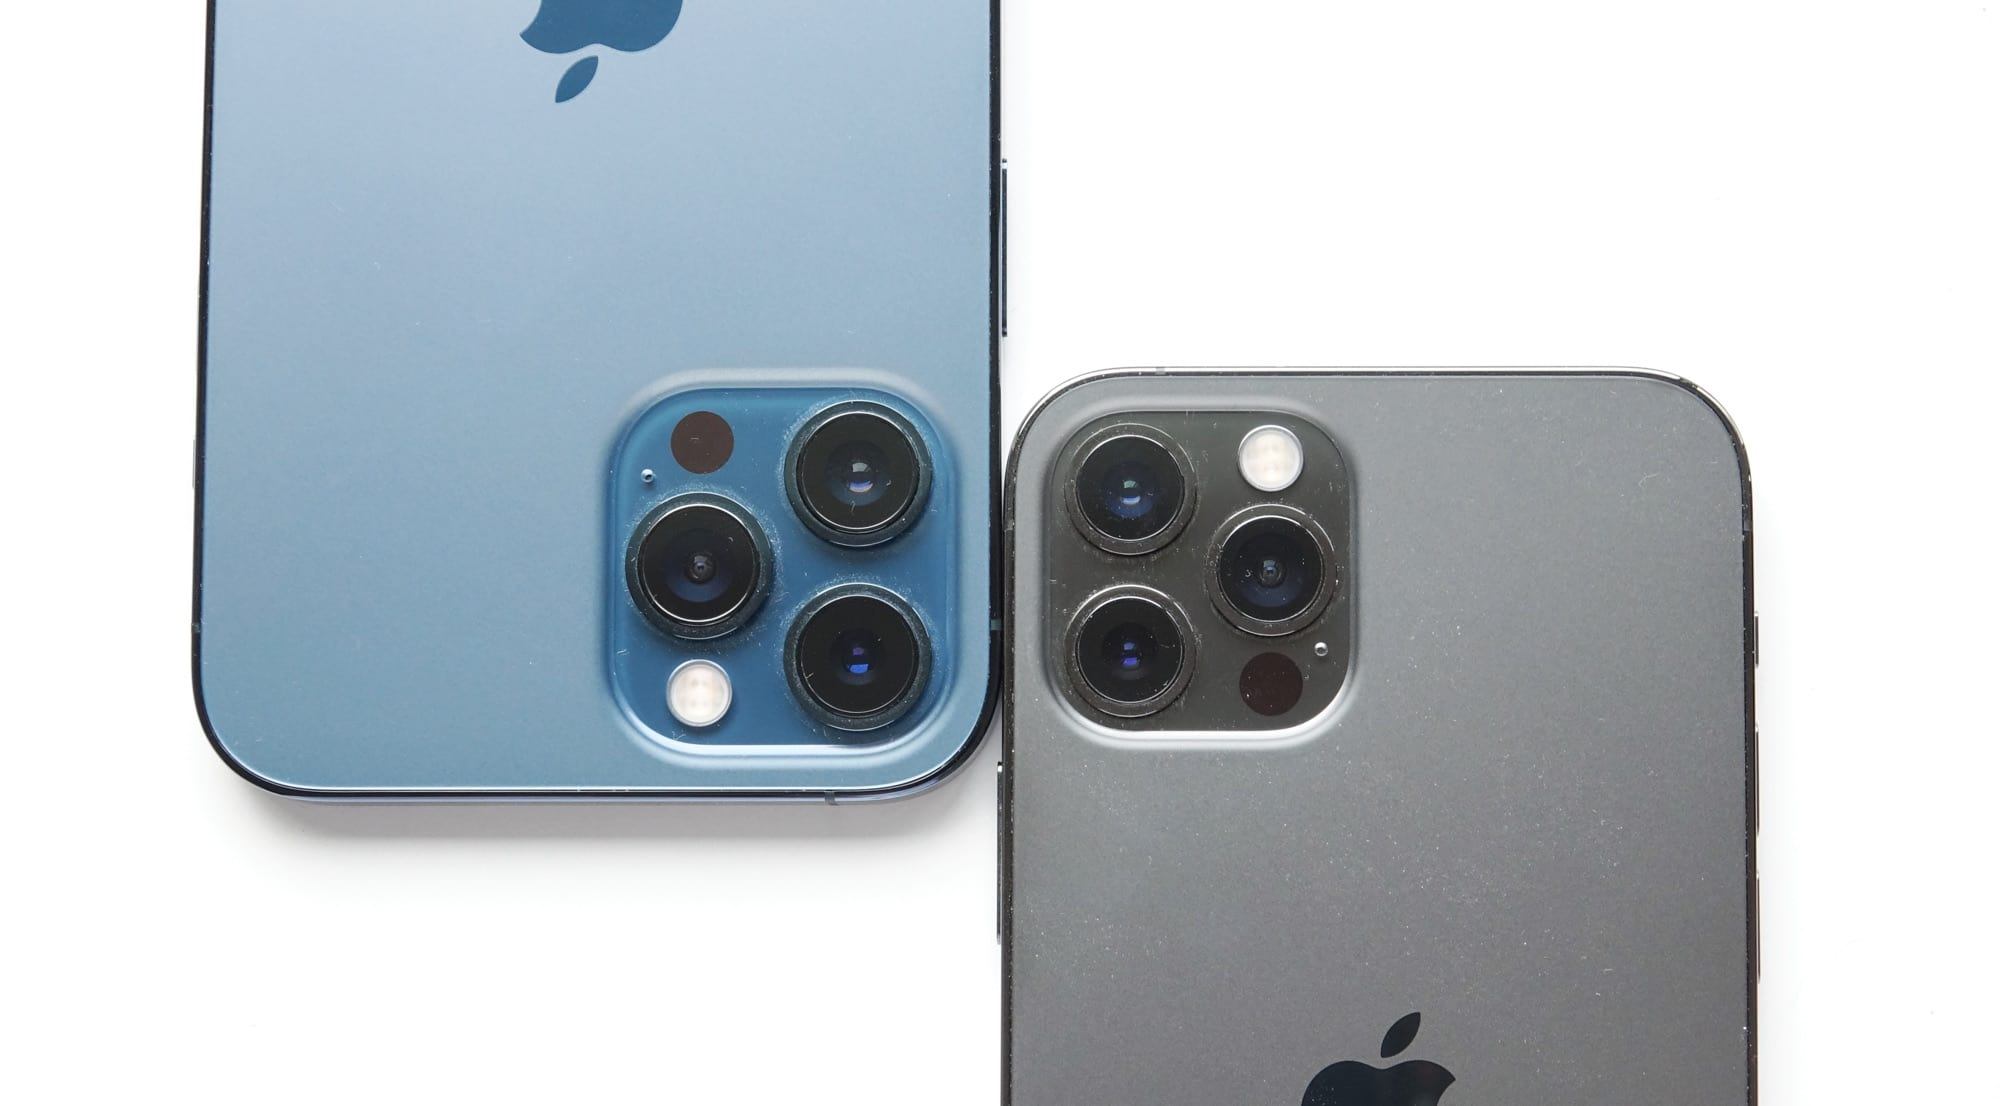 The cameras on the iPhone 12 Pro Max (left) and the iPhone 12 Pro (right)